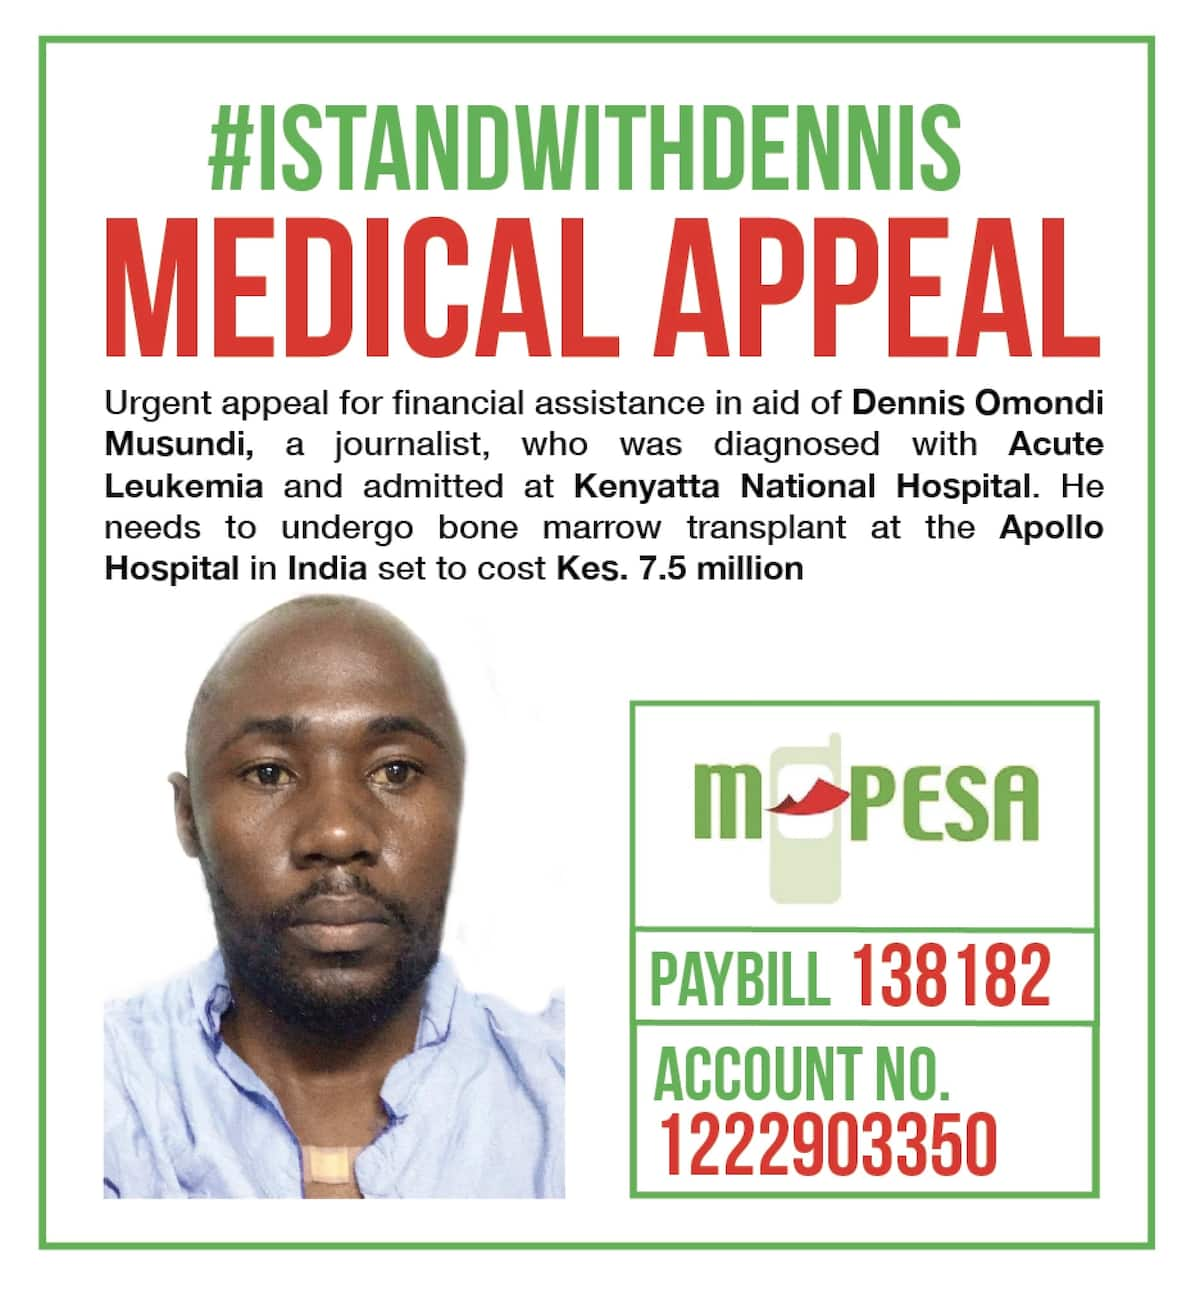 Kenyan journalist Dennis Omondi in need of urgent medical aid finally flies to India, still needs your financial assistance